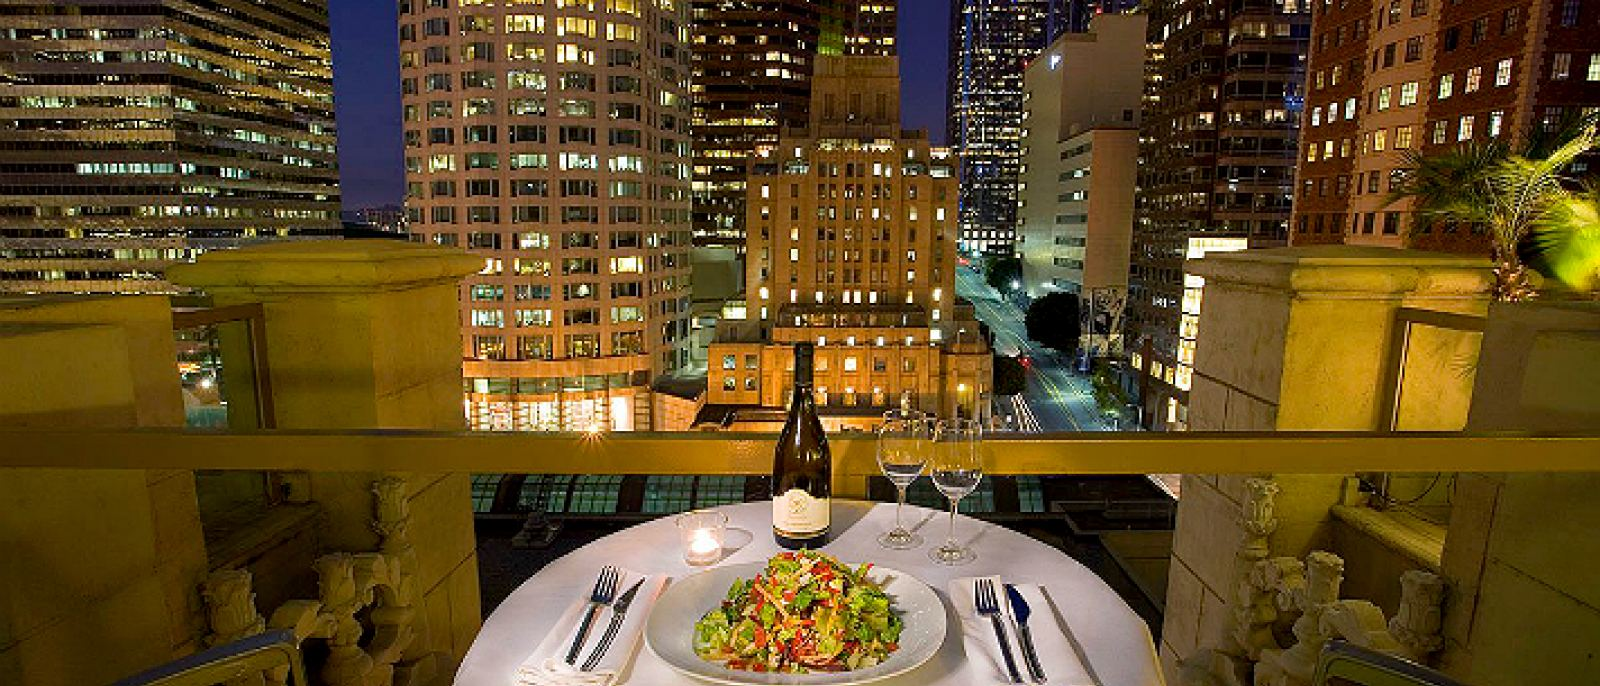 Rooftop table at Checkers | Photo courtesy of Hilton Checkers, Facebook